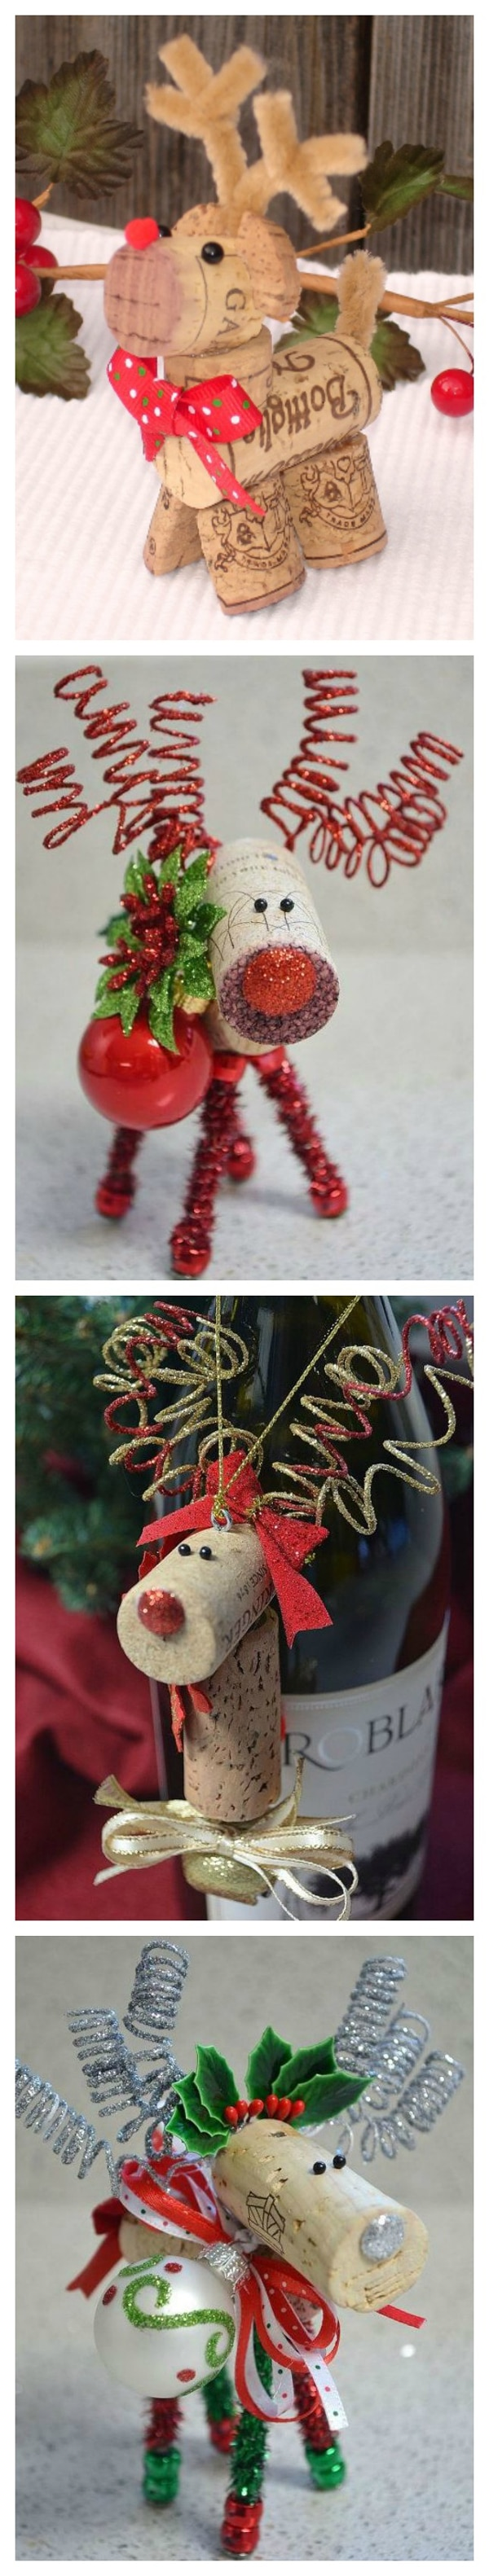 17 Epic Christmas Craft Ideas Pretty My Party Party Ideas